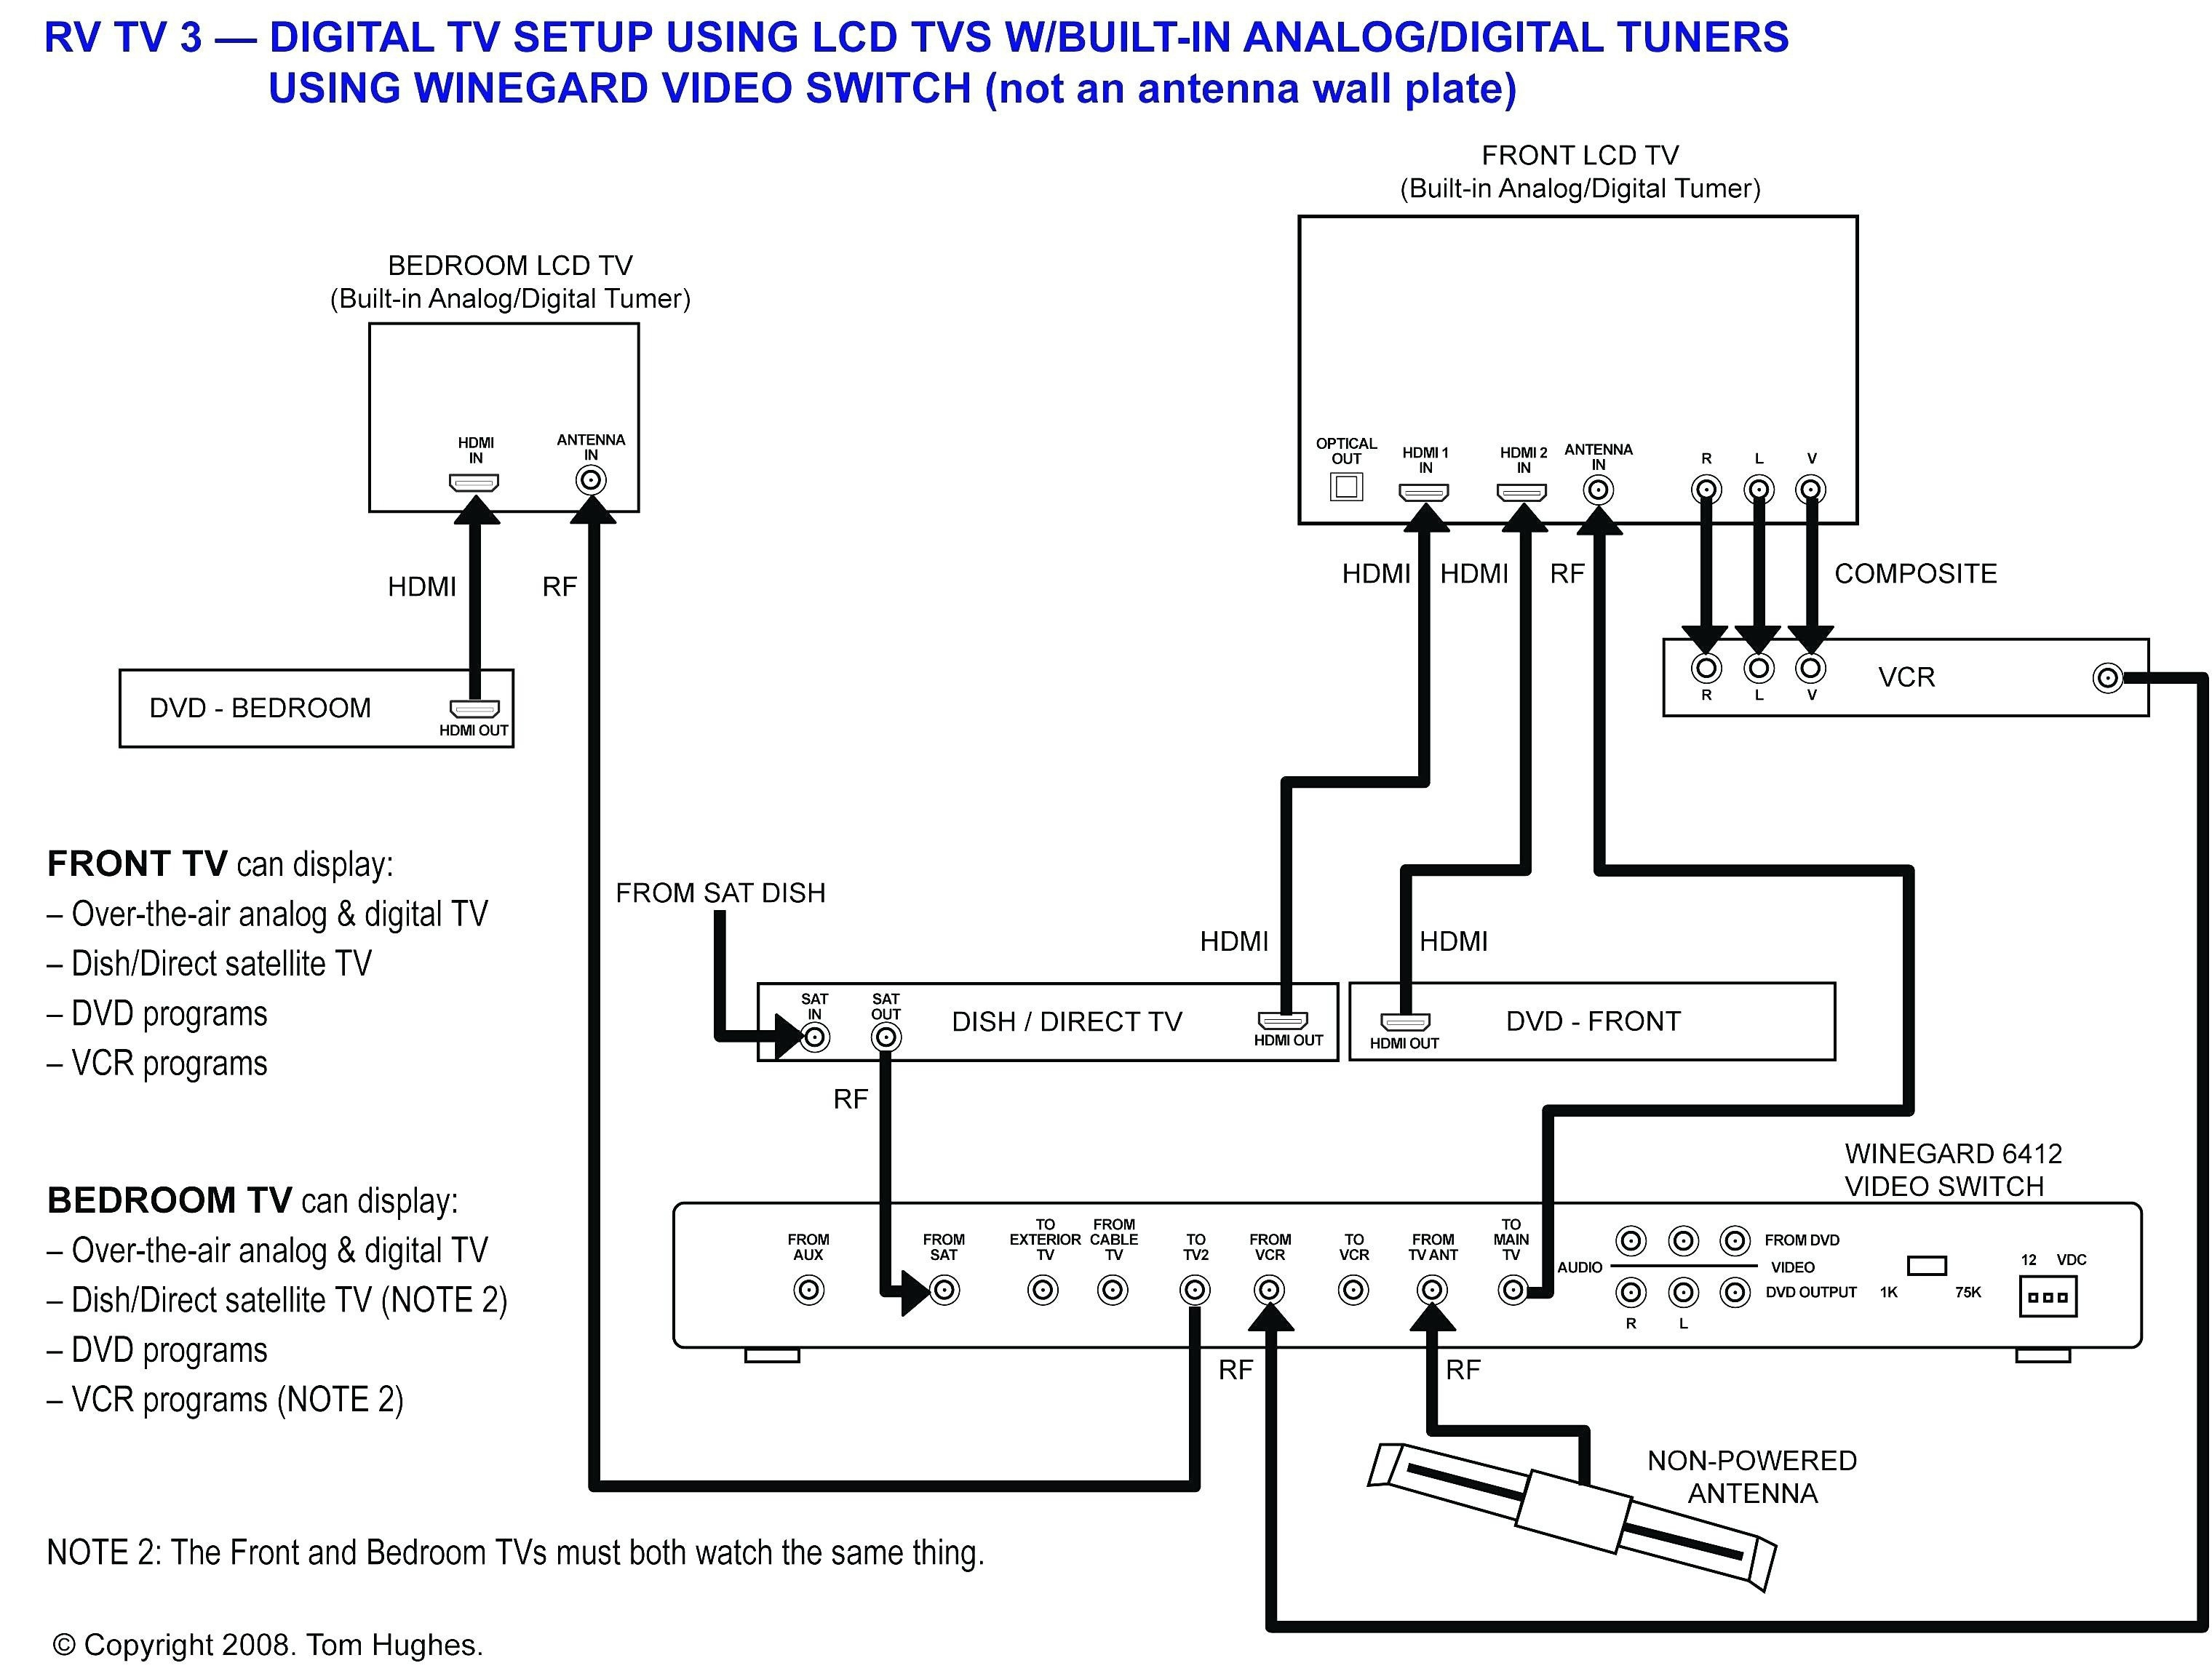 Tv Wiring Diagram - 9.xeghaqqt.petportal.info • on 7 pin trailer colors, 7 pin power supply, 7 pin power cord, 7 pin wire plug, 7 pin wire adapter, ford 7 pin trailer wiring harness, 7 pin terminal block, seven pin wiring harness, 7 pin wiring diagram,